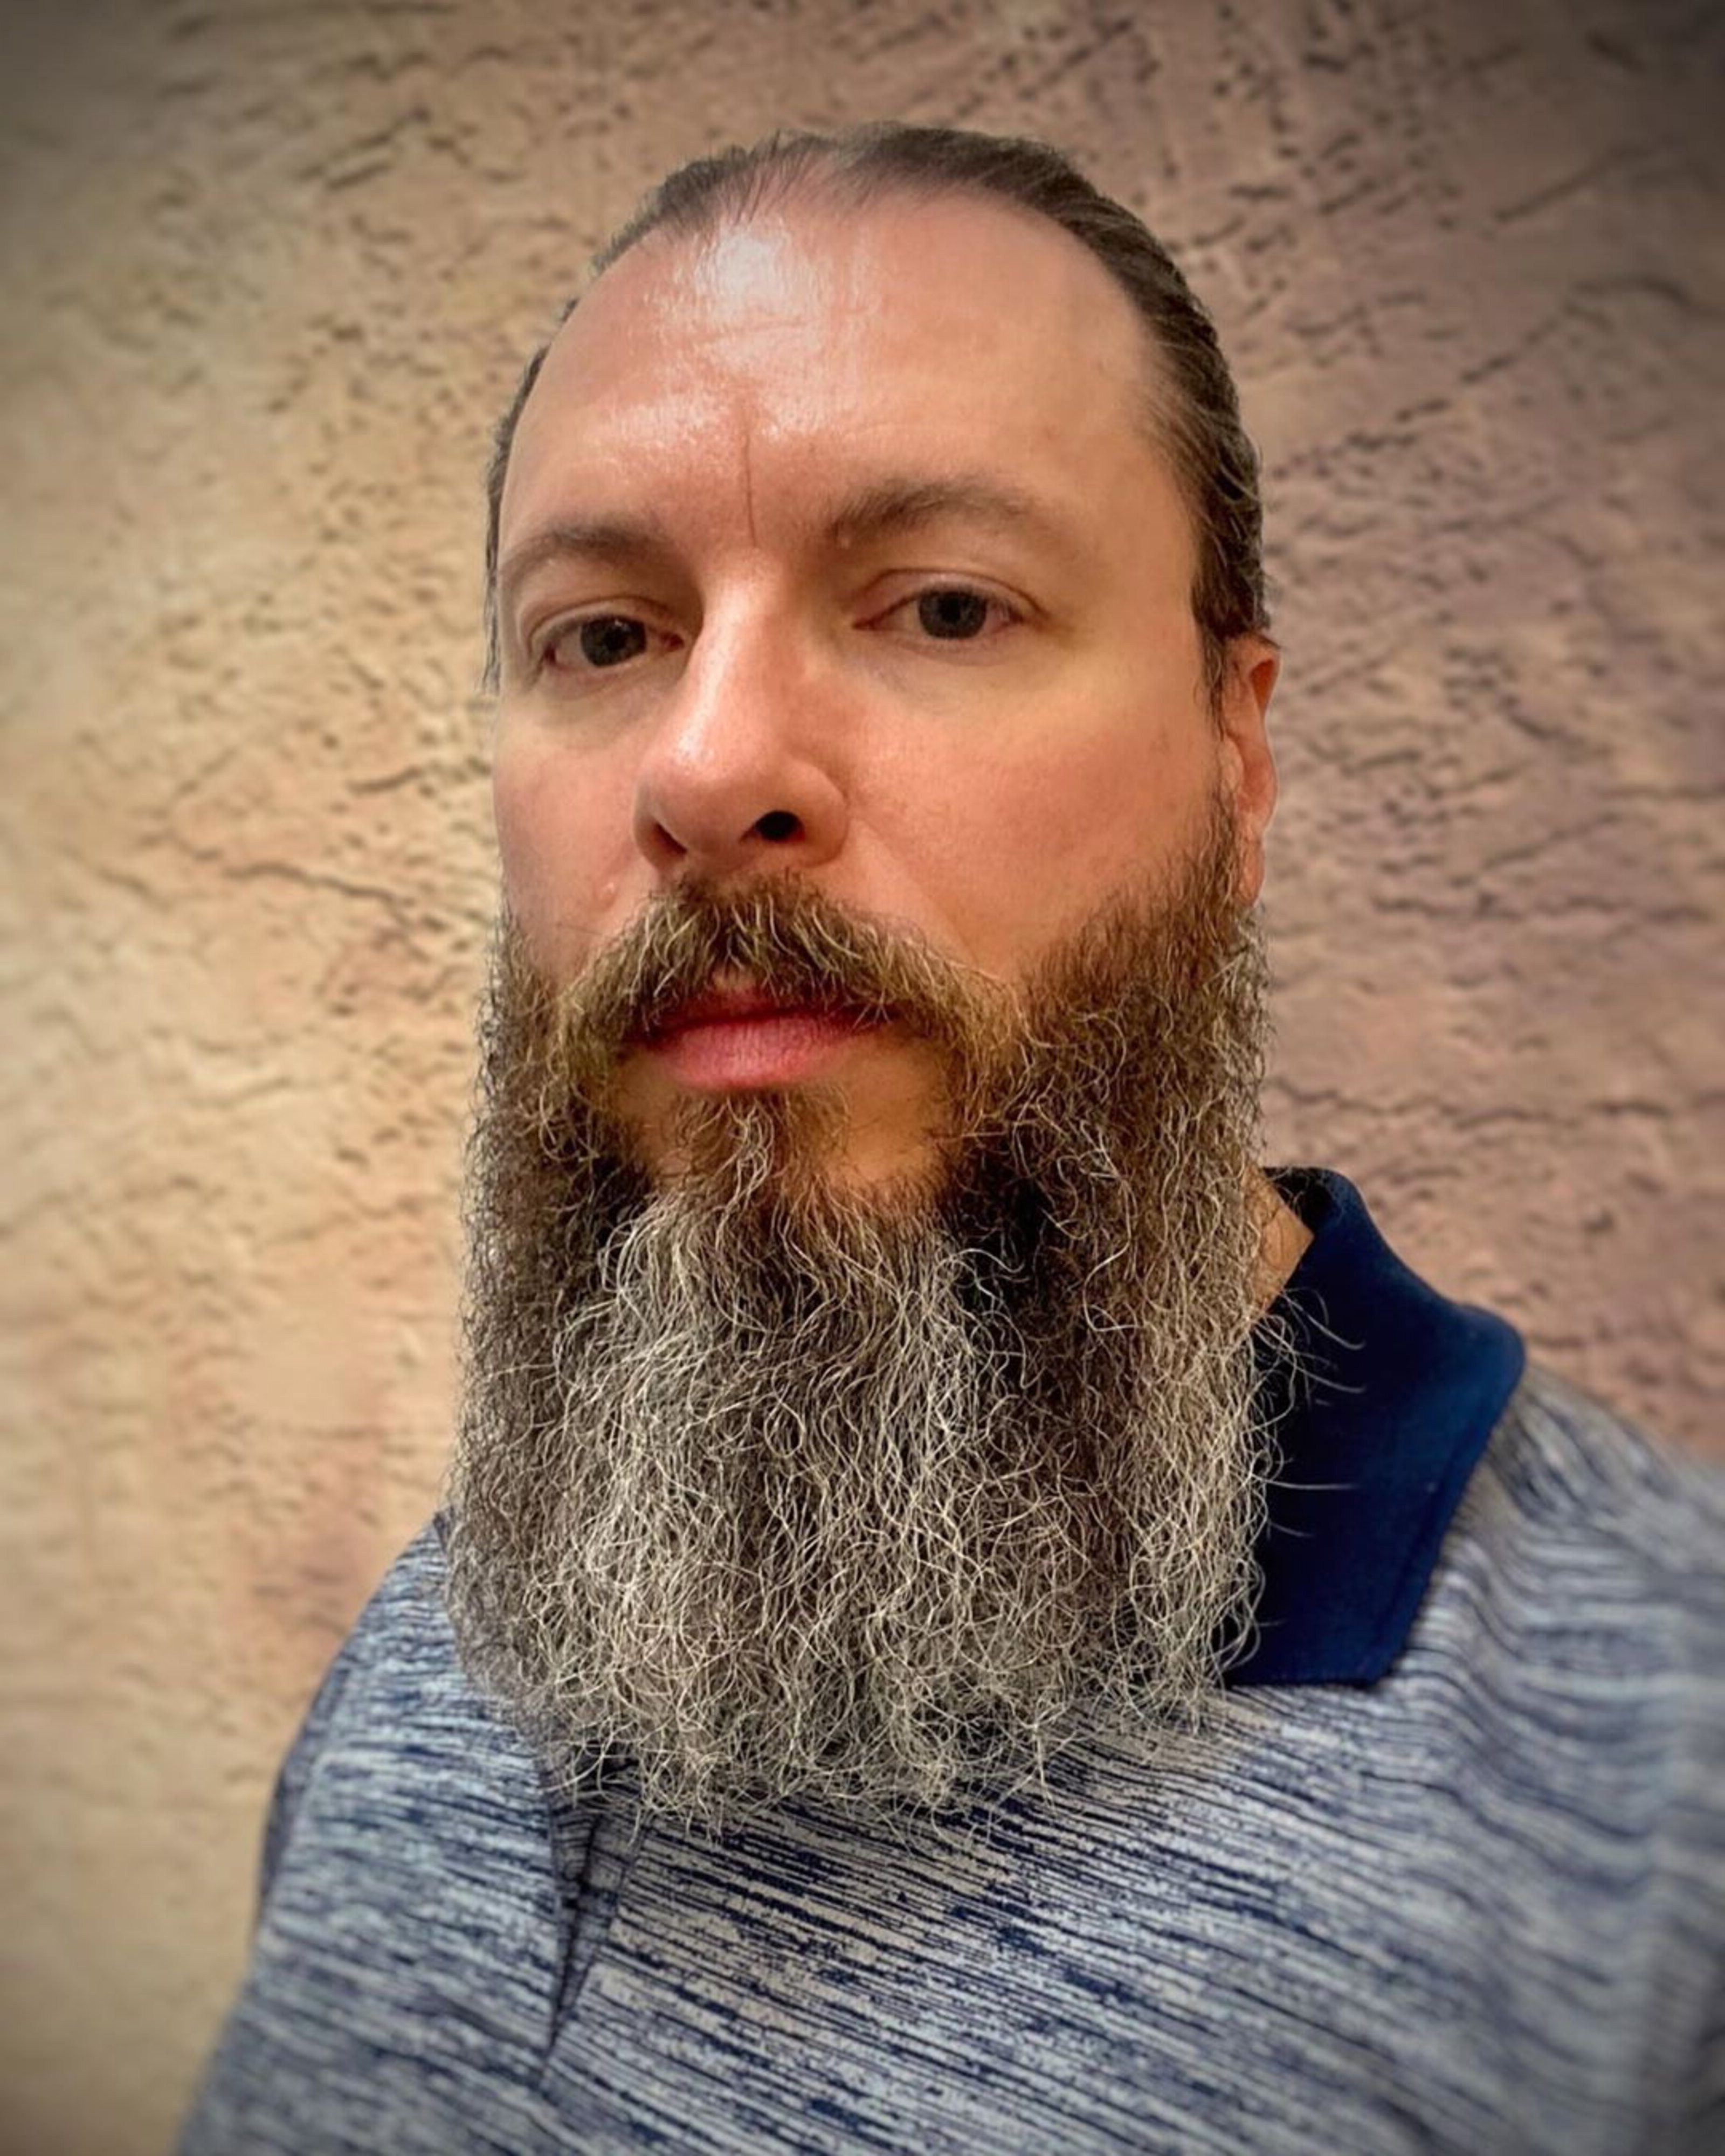 A long bearded style with a buzz cut.